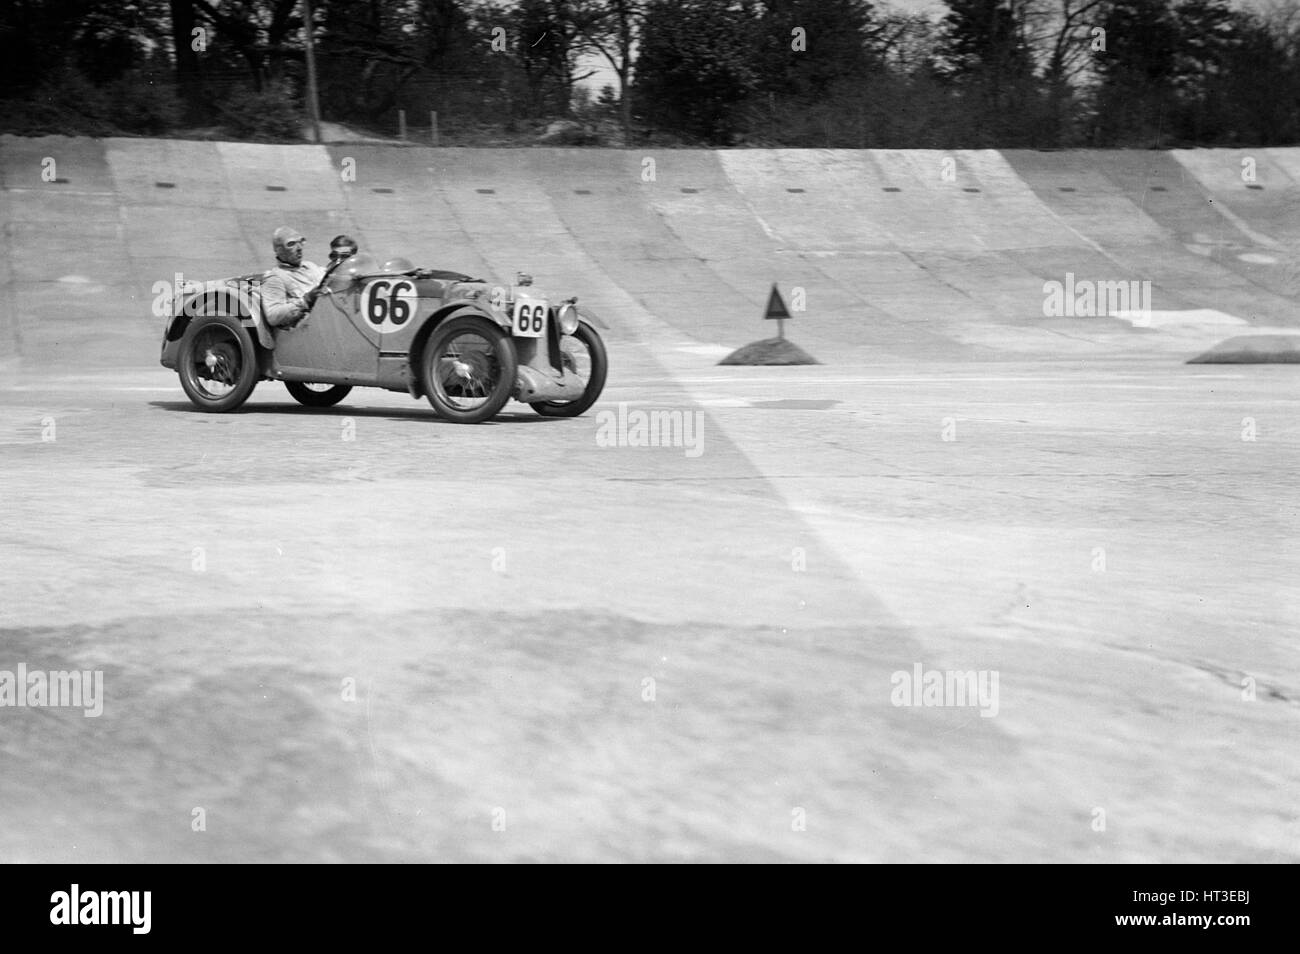 MG C type of HC Hamilton and SV Holbrook at the JCC Double Twelve race, Brooklands, 8/9 May 1931. Artist: Bill Brunell. - Stock Image